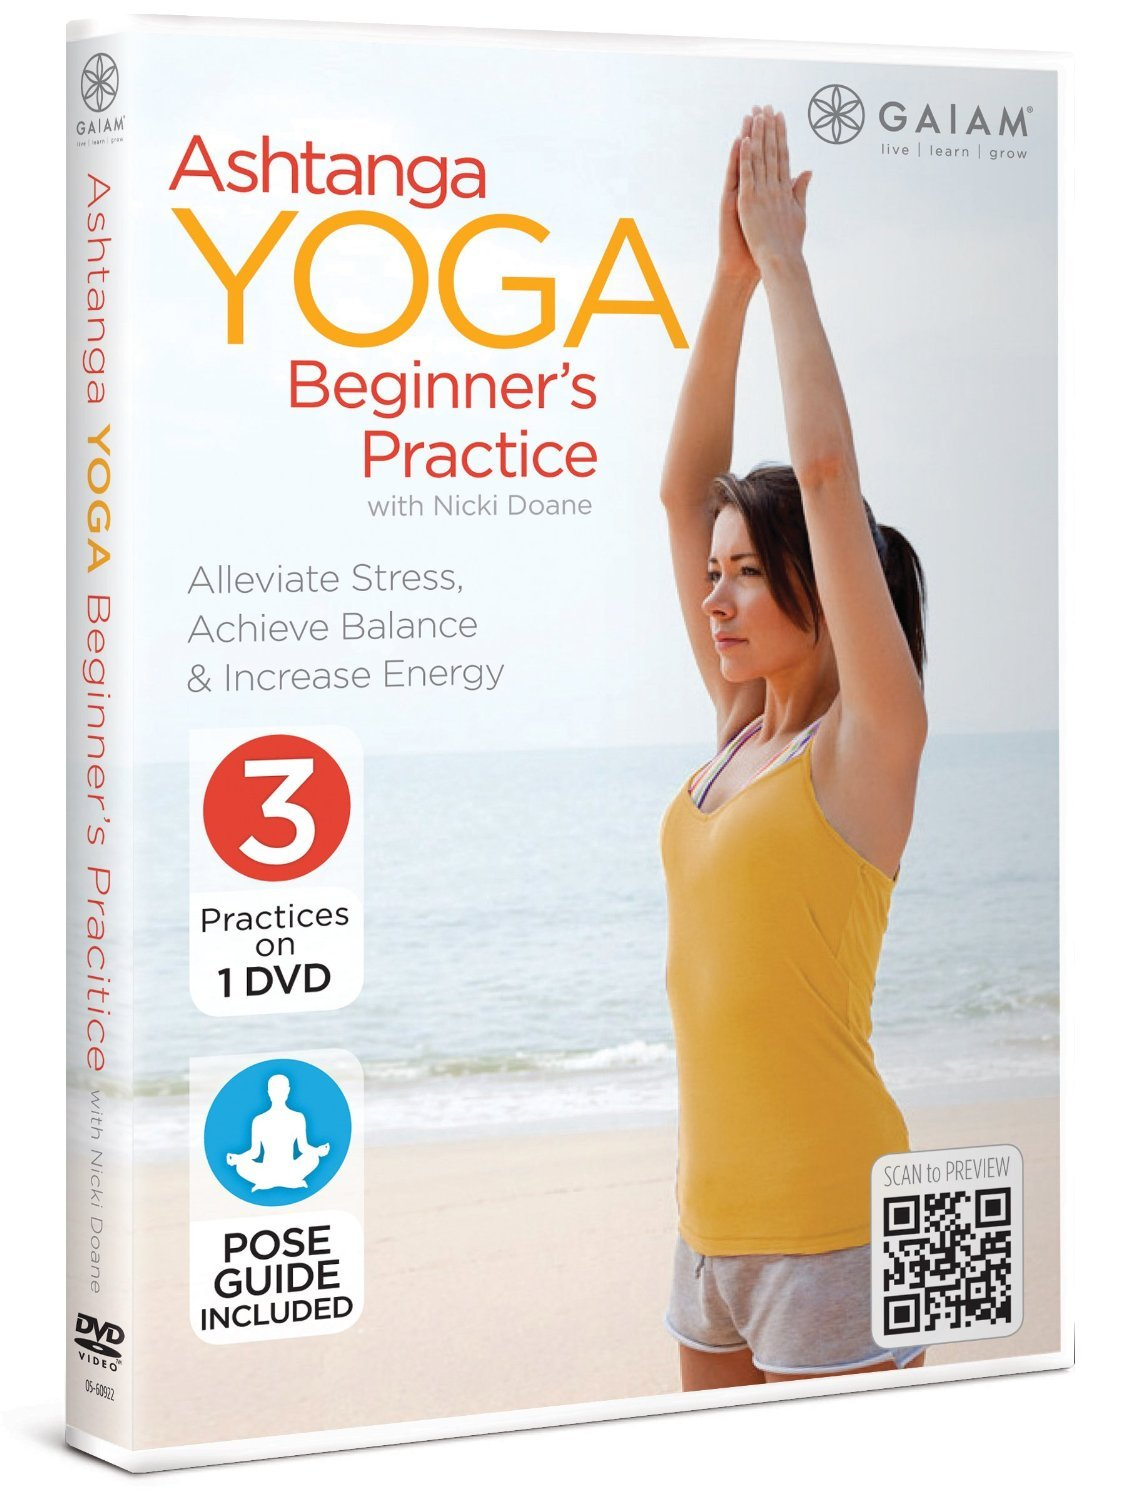 Amazon.com: Ashtanga YOGA Beginners Practice with Nicki ...